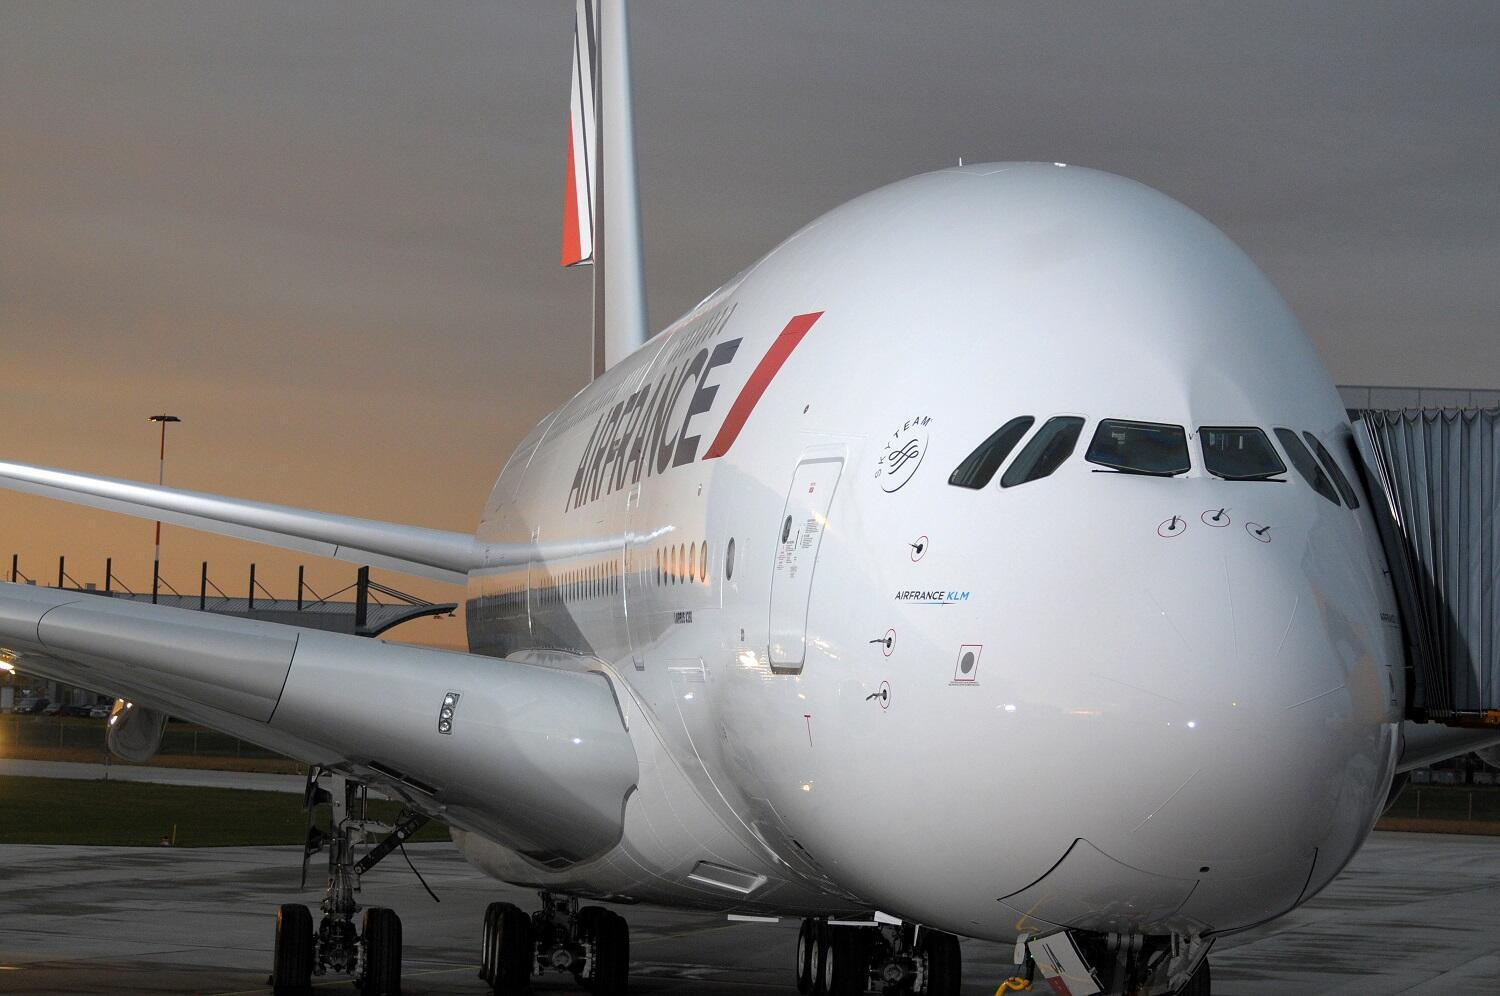 French flag carrier Air France, which halted most flights during the Covid-19 epidemic, received state loans and guarantees worth nearly half of a 15-billion-euro recovery package for the air industry announced by the French government on Tuesday.